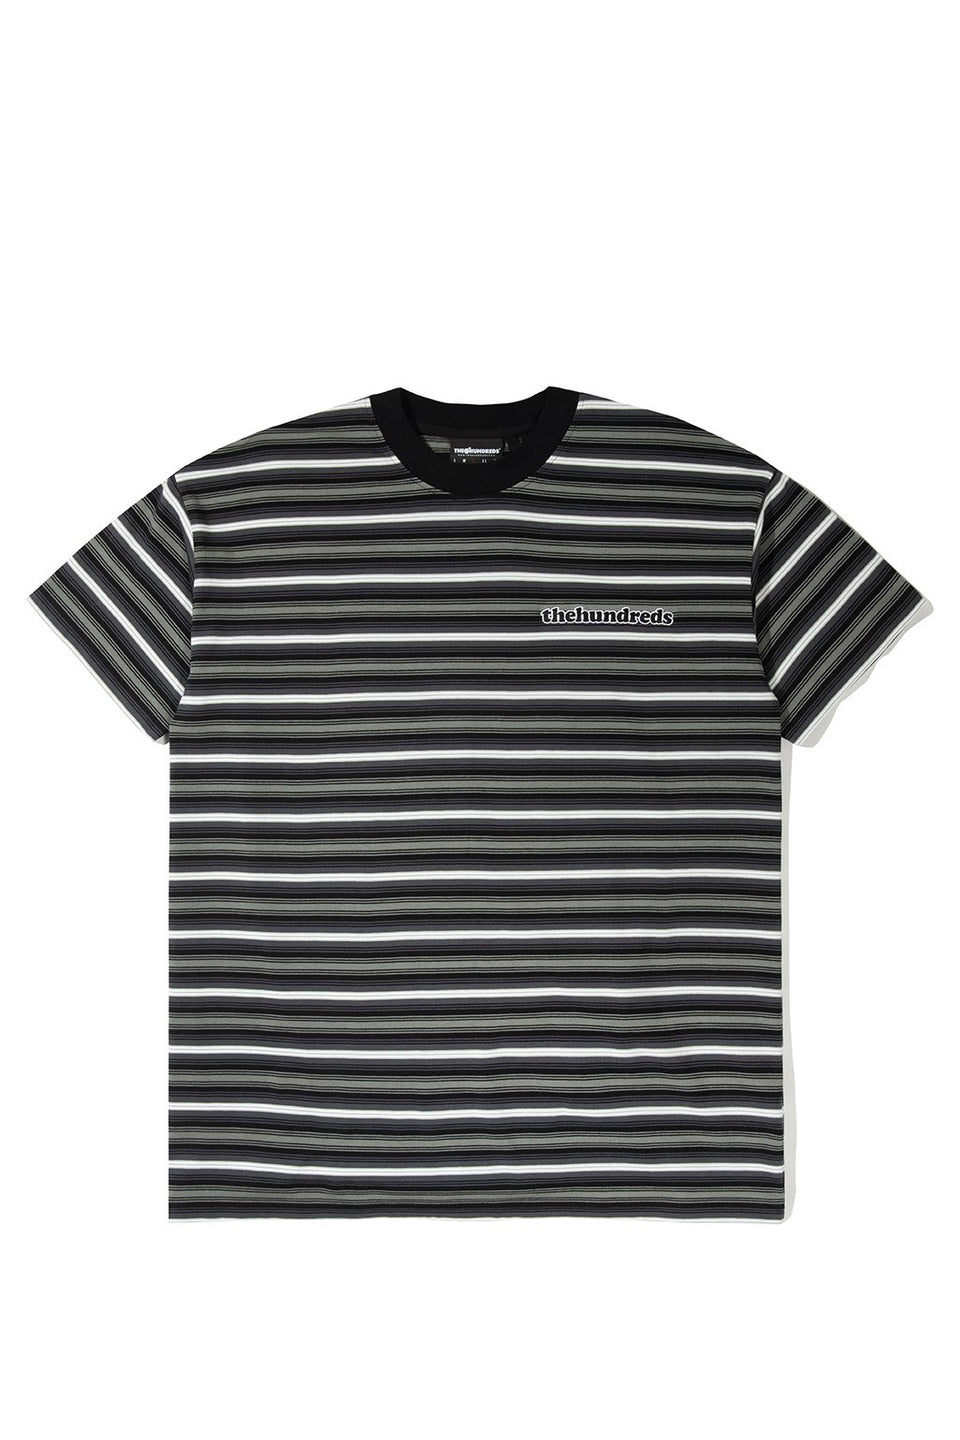 The Hundreds Rowan T-Shirt TOPS Black